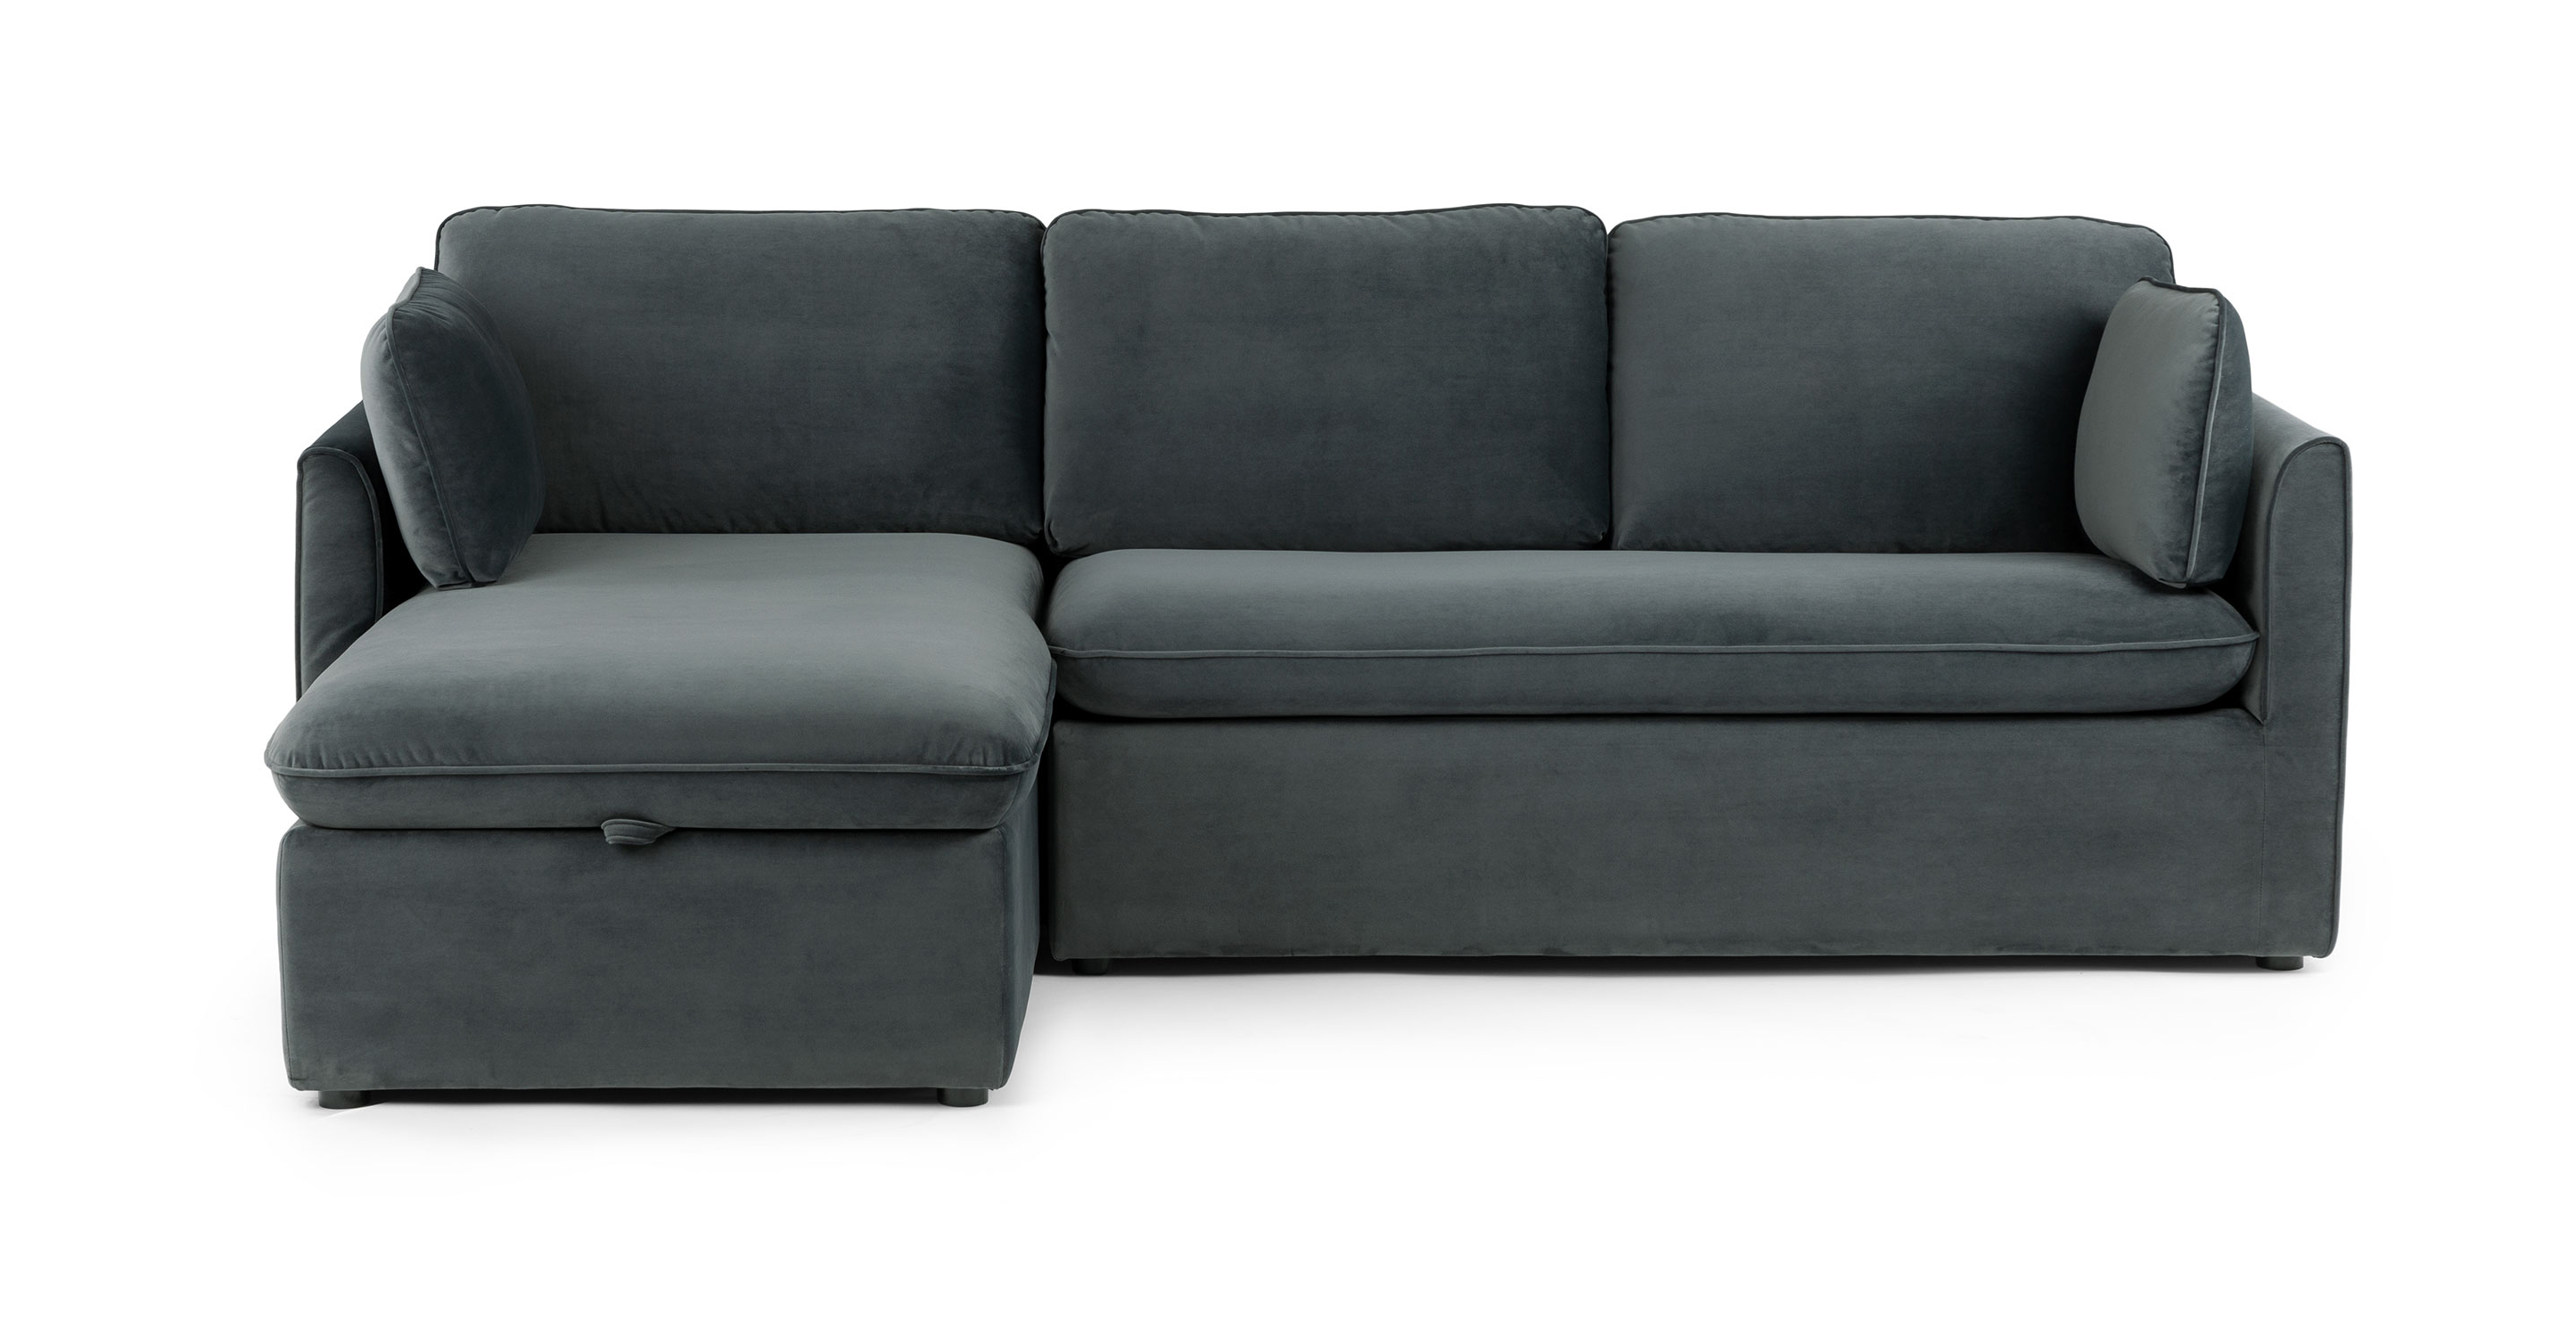 Sofa Bed For Sale Toronto Blue Gray Velvet Sofa Bed Left Sectional Article Oneira Modern Furniture